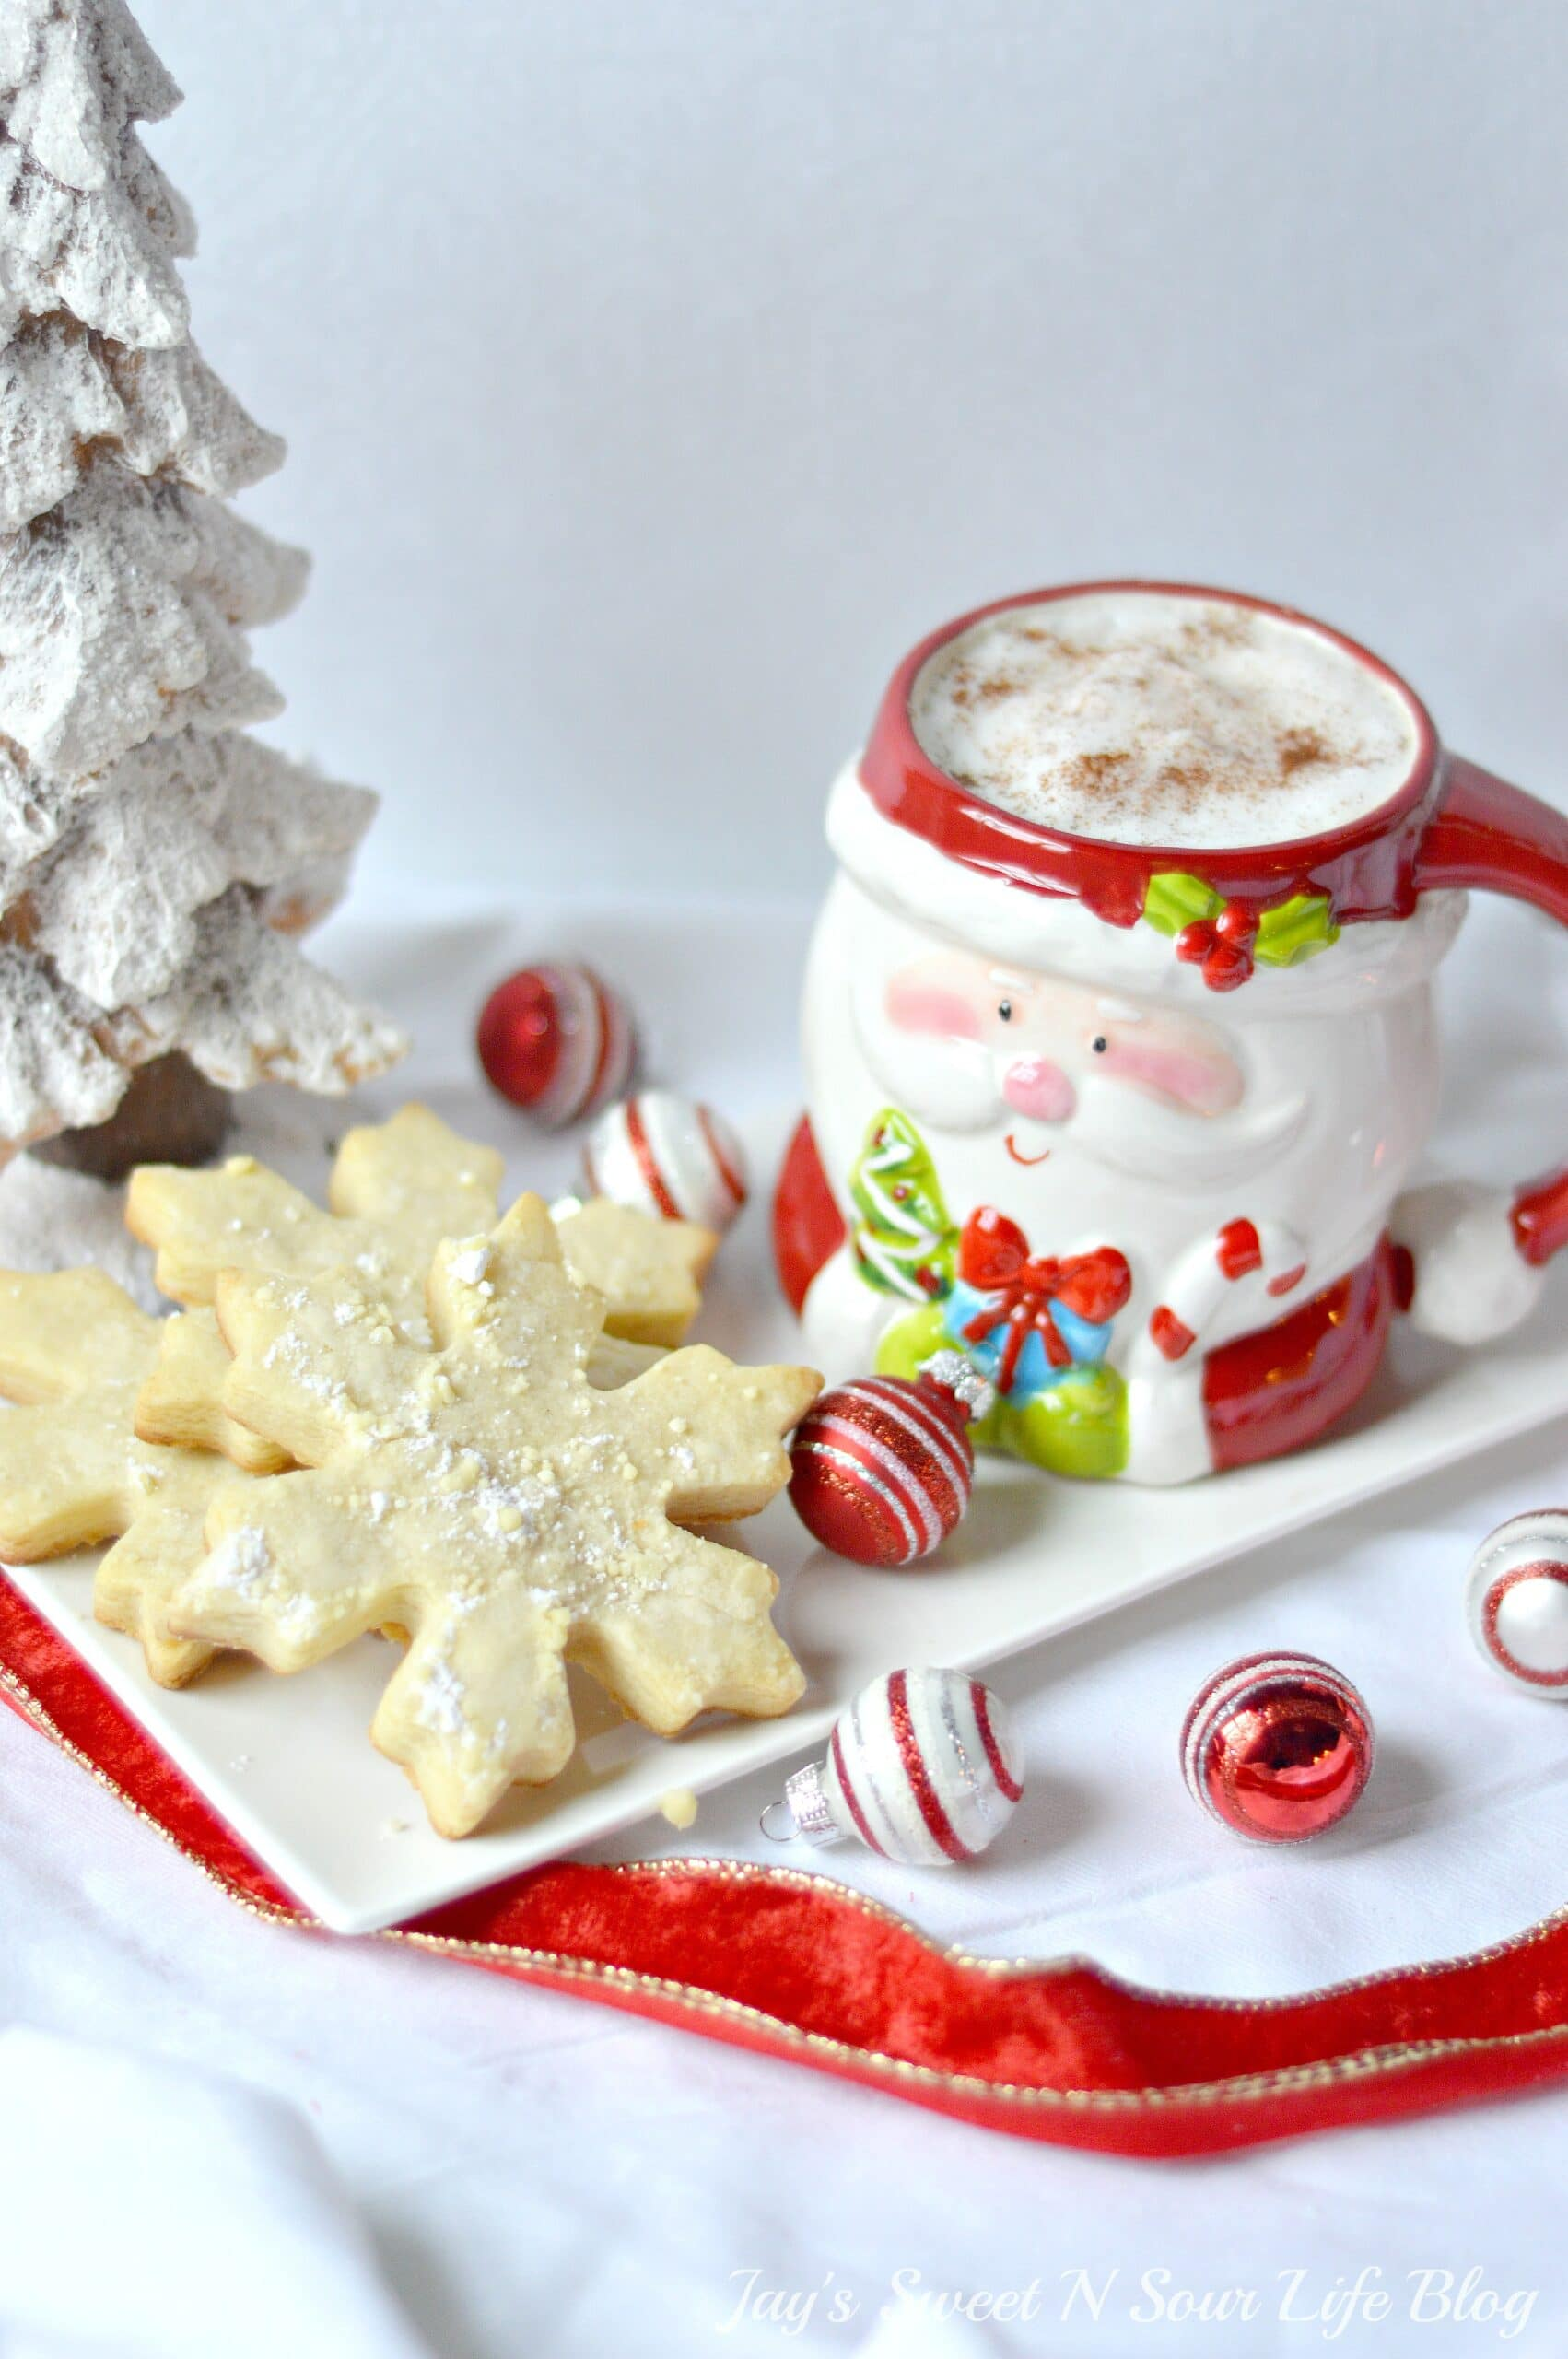 Santas milk and cookies latte. Treat Santa to his very own Santa's Milk and Cookies Latte, paired with a buttery snowflake cookie perfect for dipping. No milk frother needed, this delicious sugar cookie flavored latte and snowflake cookies make the perfect holiday treat duo.